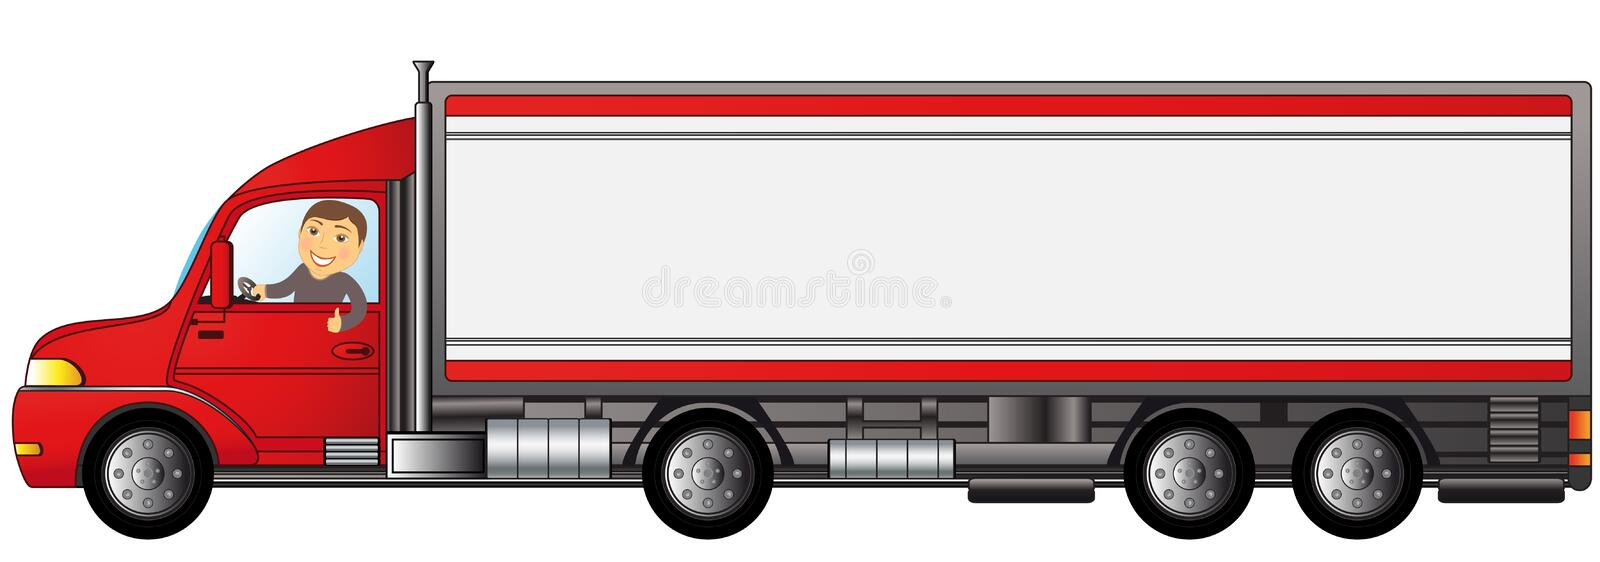 Download Heavy Truck With Man With Space For Text Stock Vector - Image: 26896851